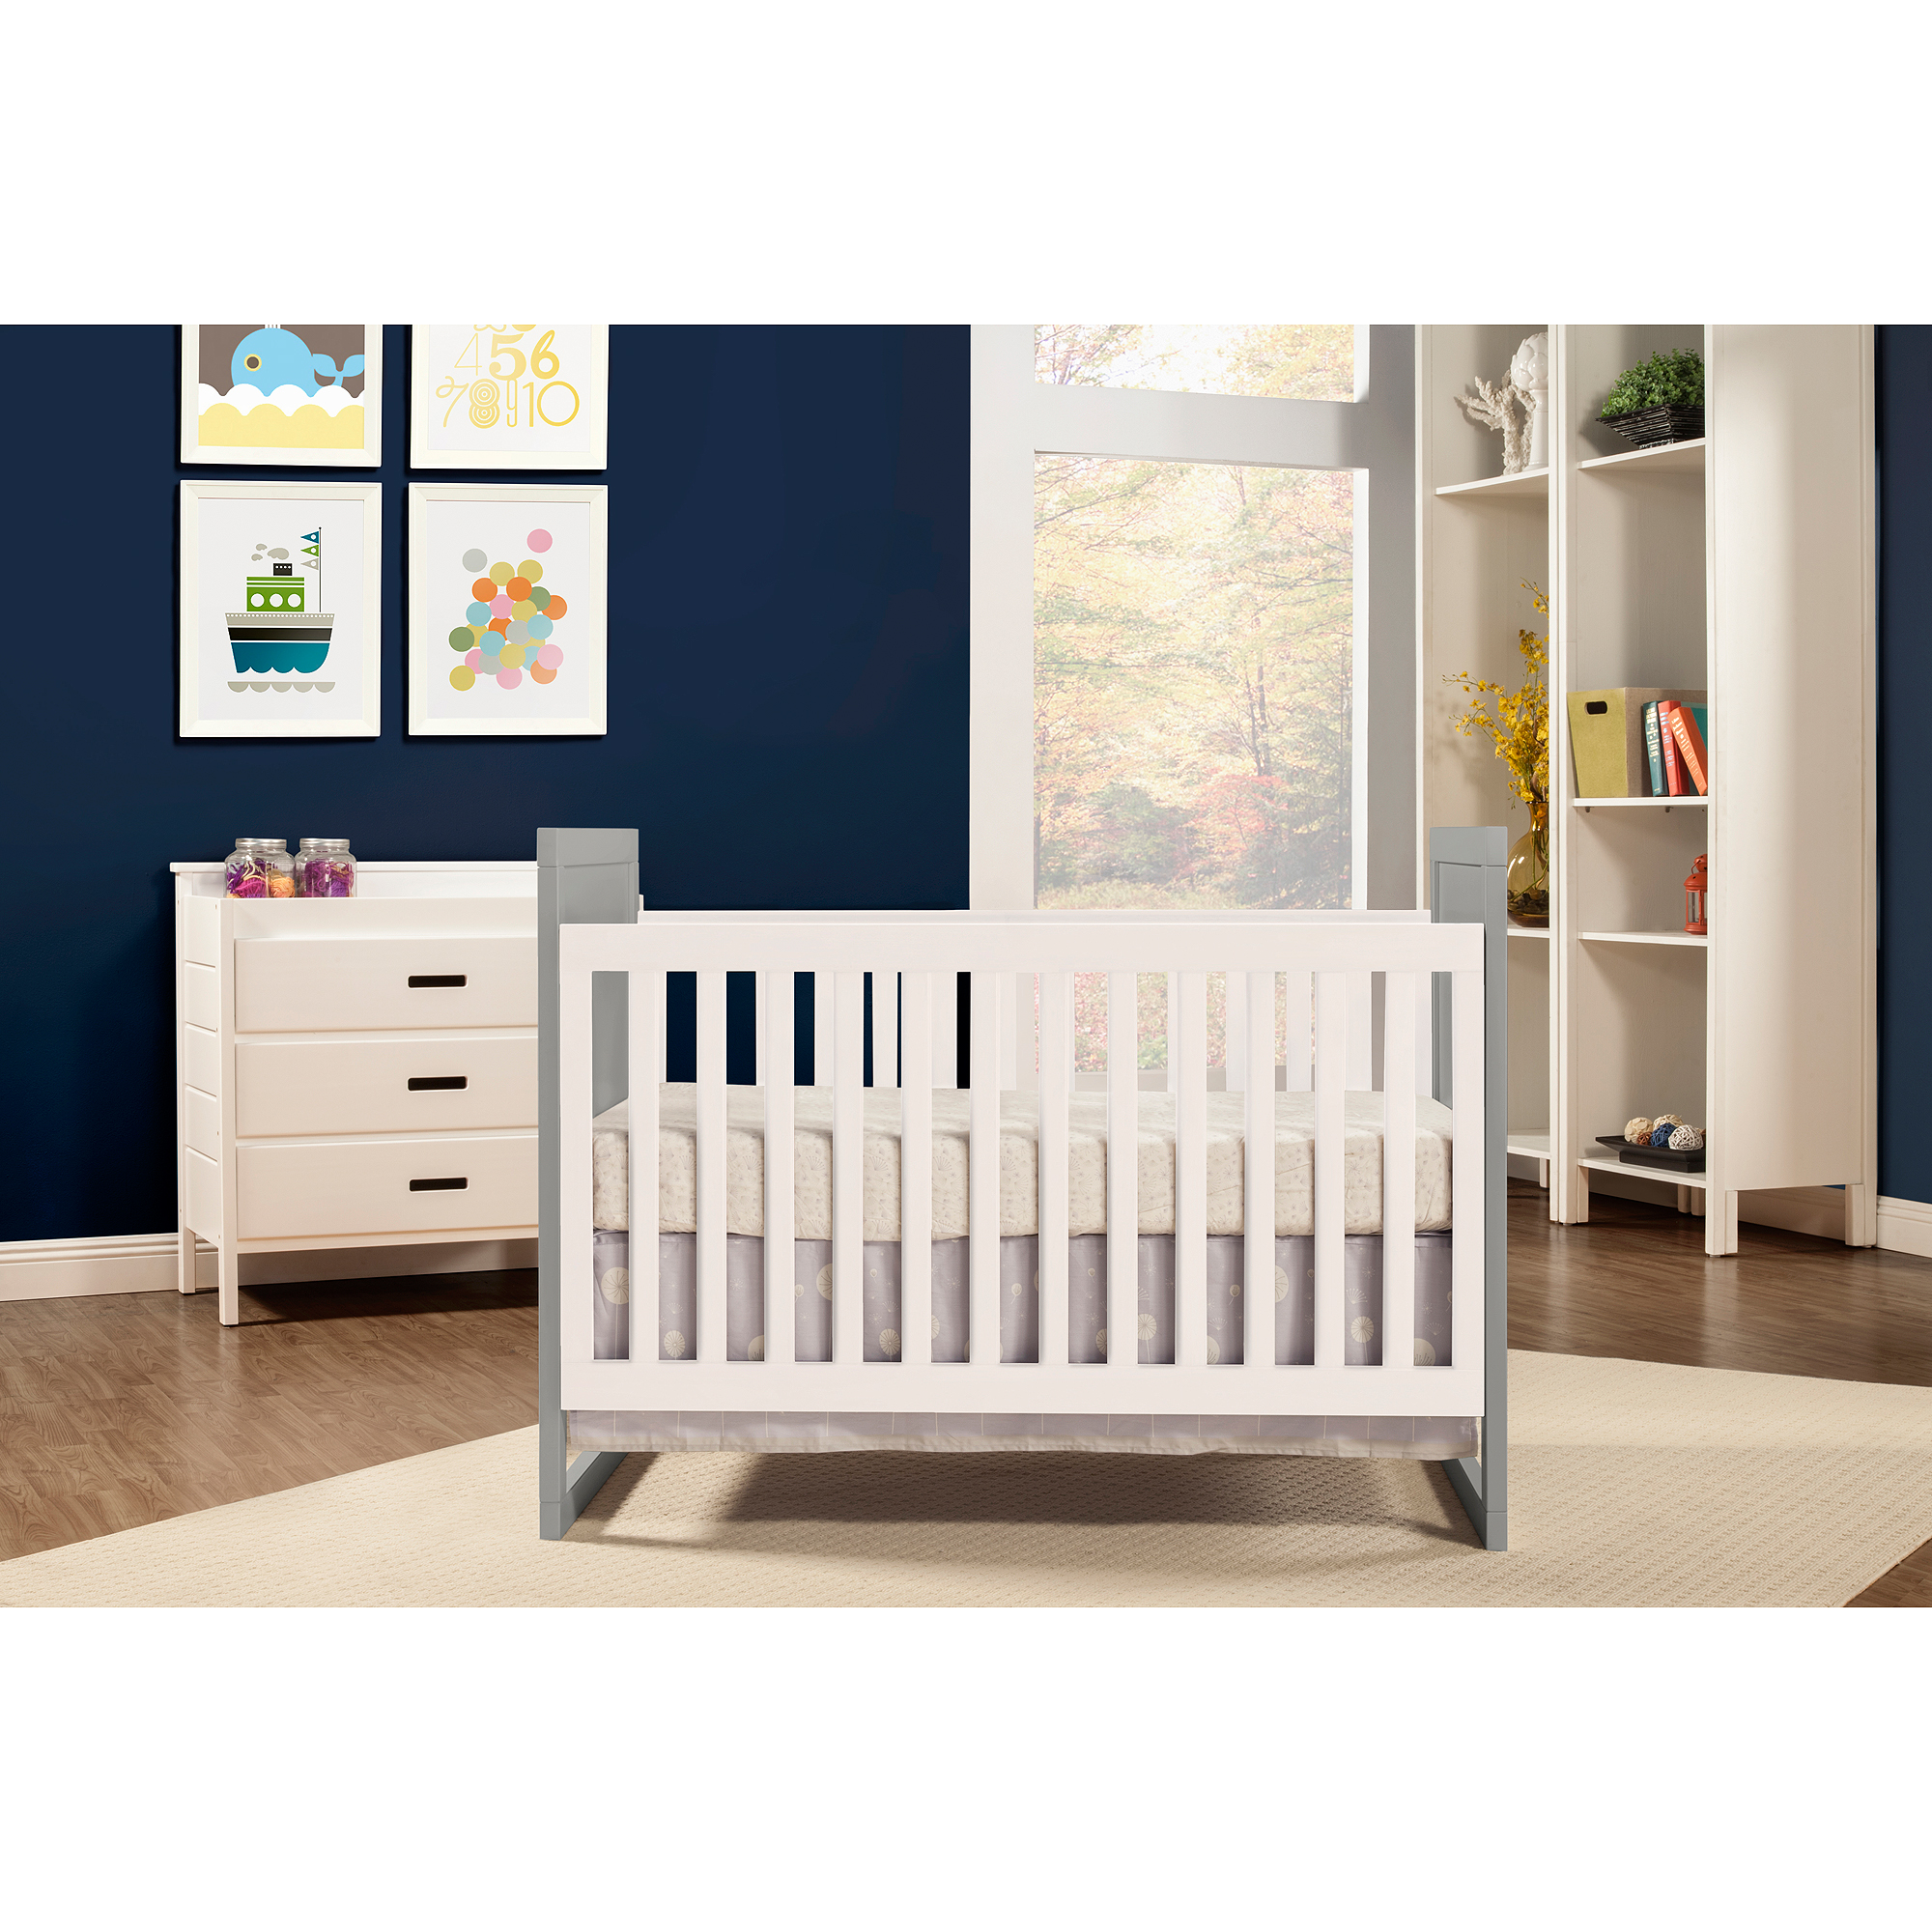 Baby Mod Modena Mod Two Tone 2 In 1 Convertible Crib Gray And White    Walmart.com